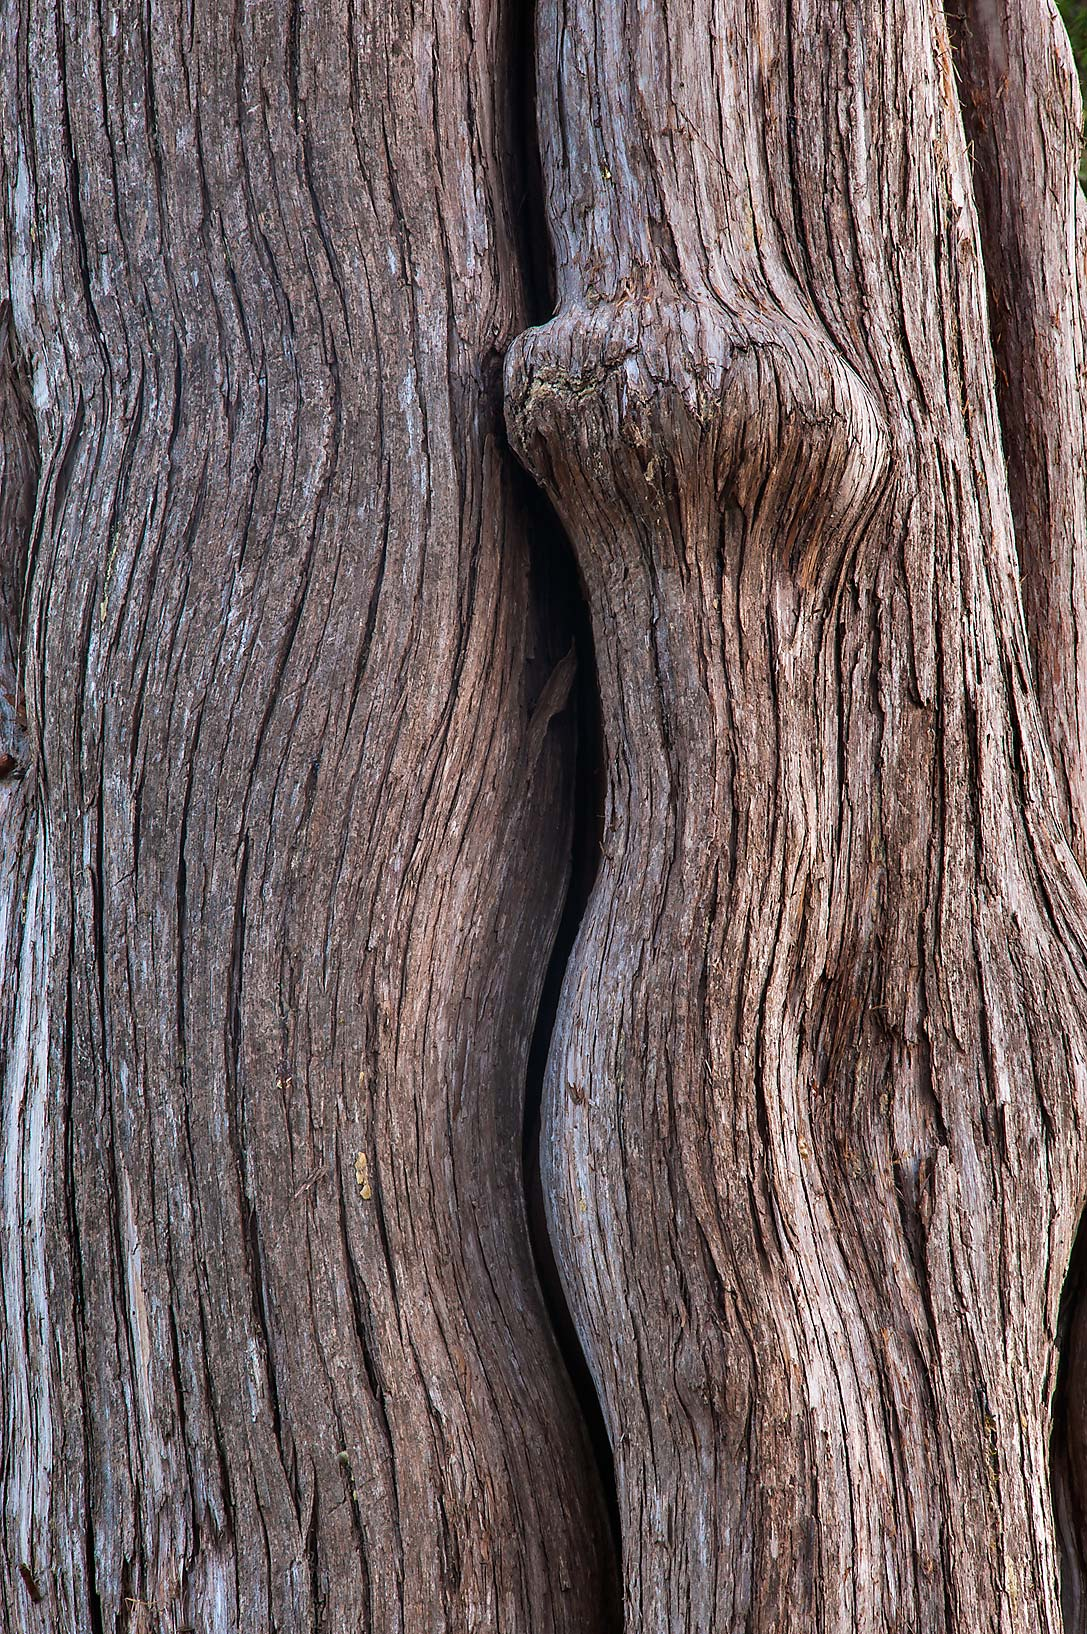 Texture of a cypress trunk in City Cemetery. Bryan, Texas